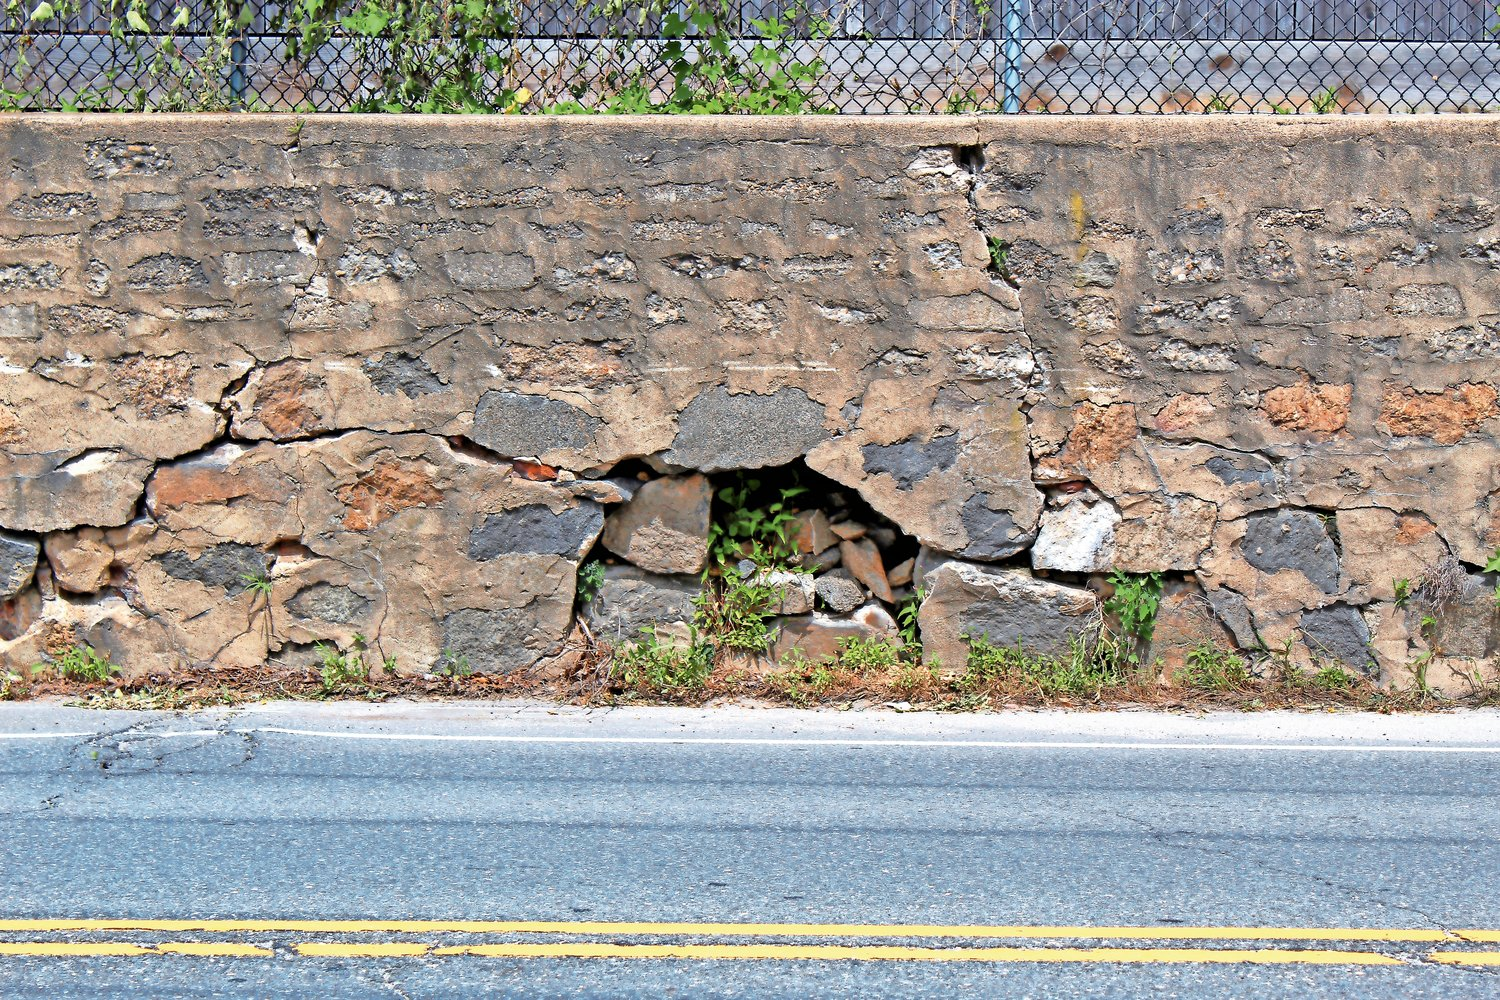 One of the most notable problems with the wall is a large cavity, shown here in June.